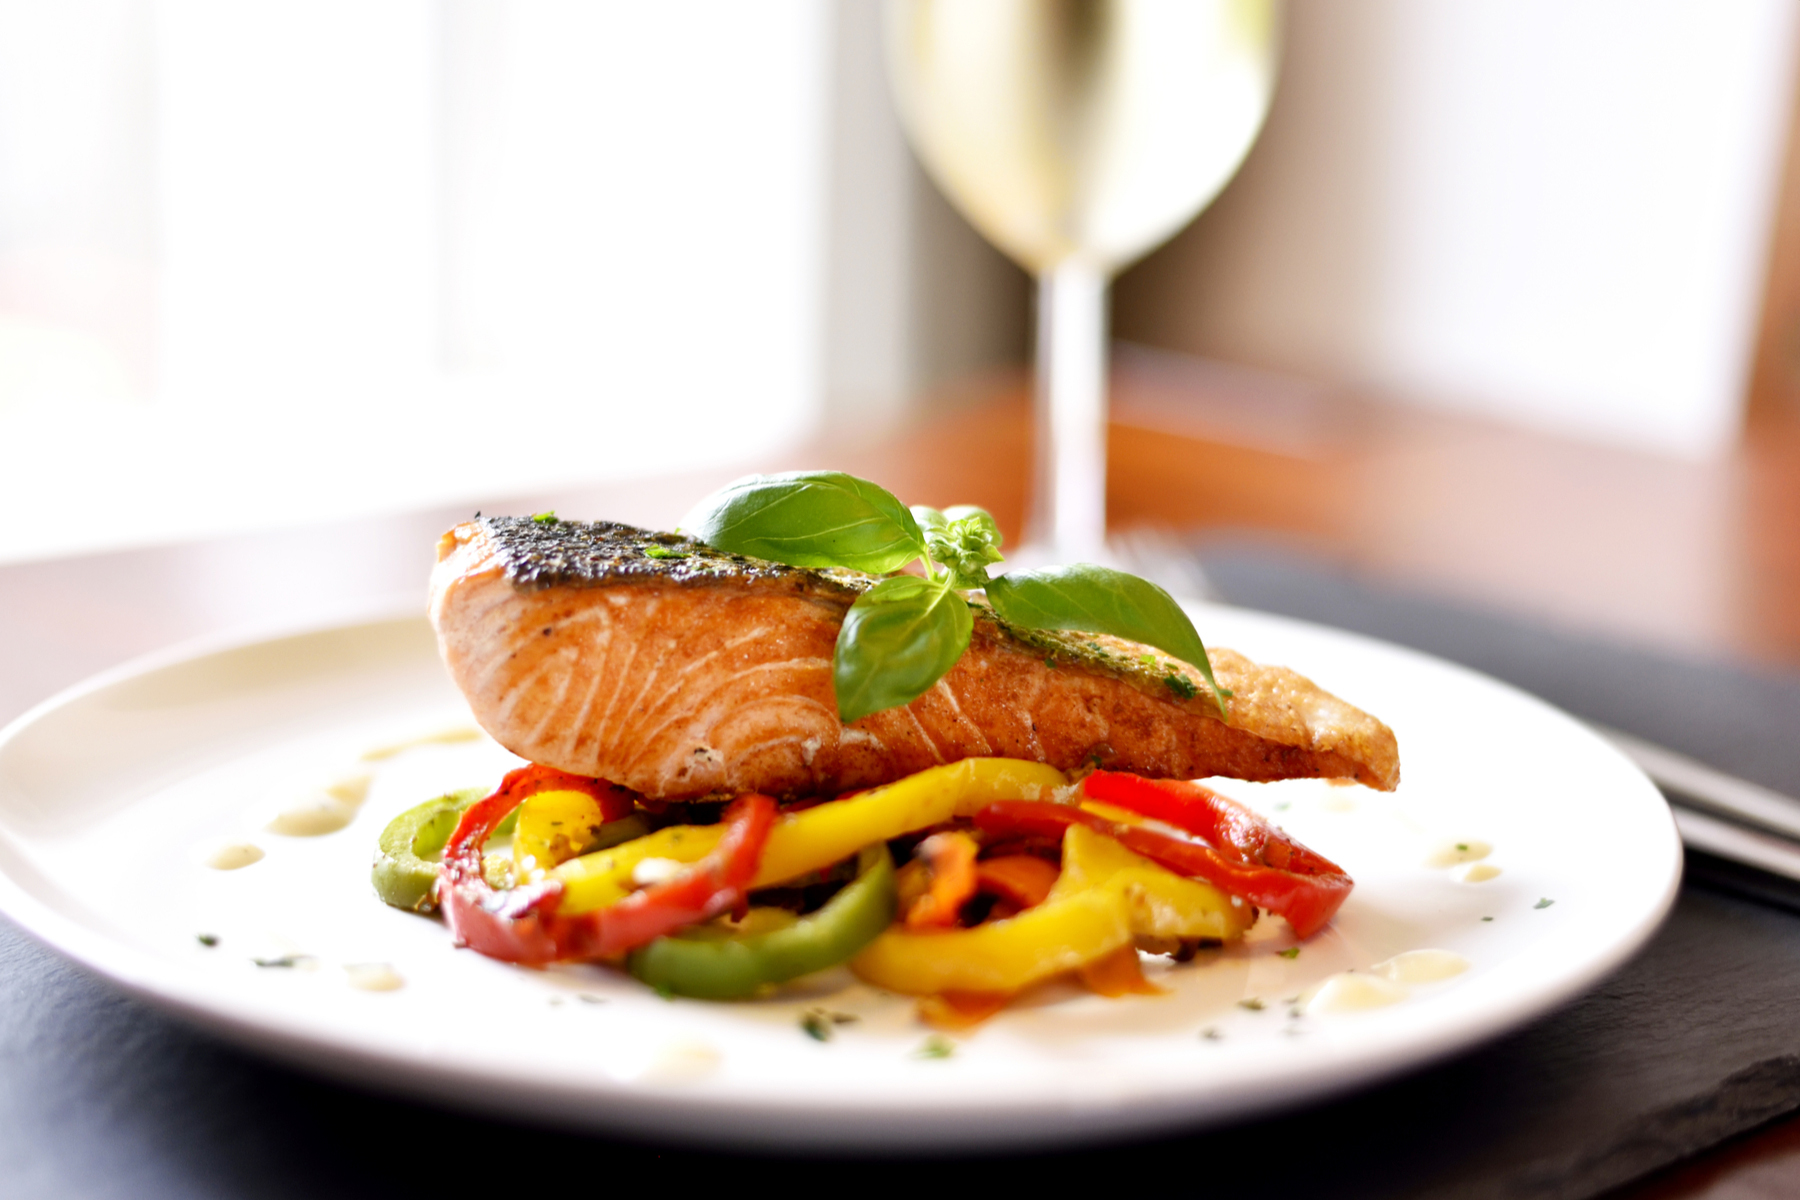 Salmon dinner with a glass of white wine